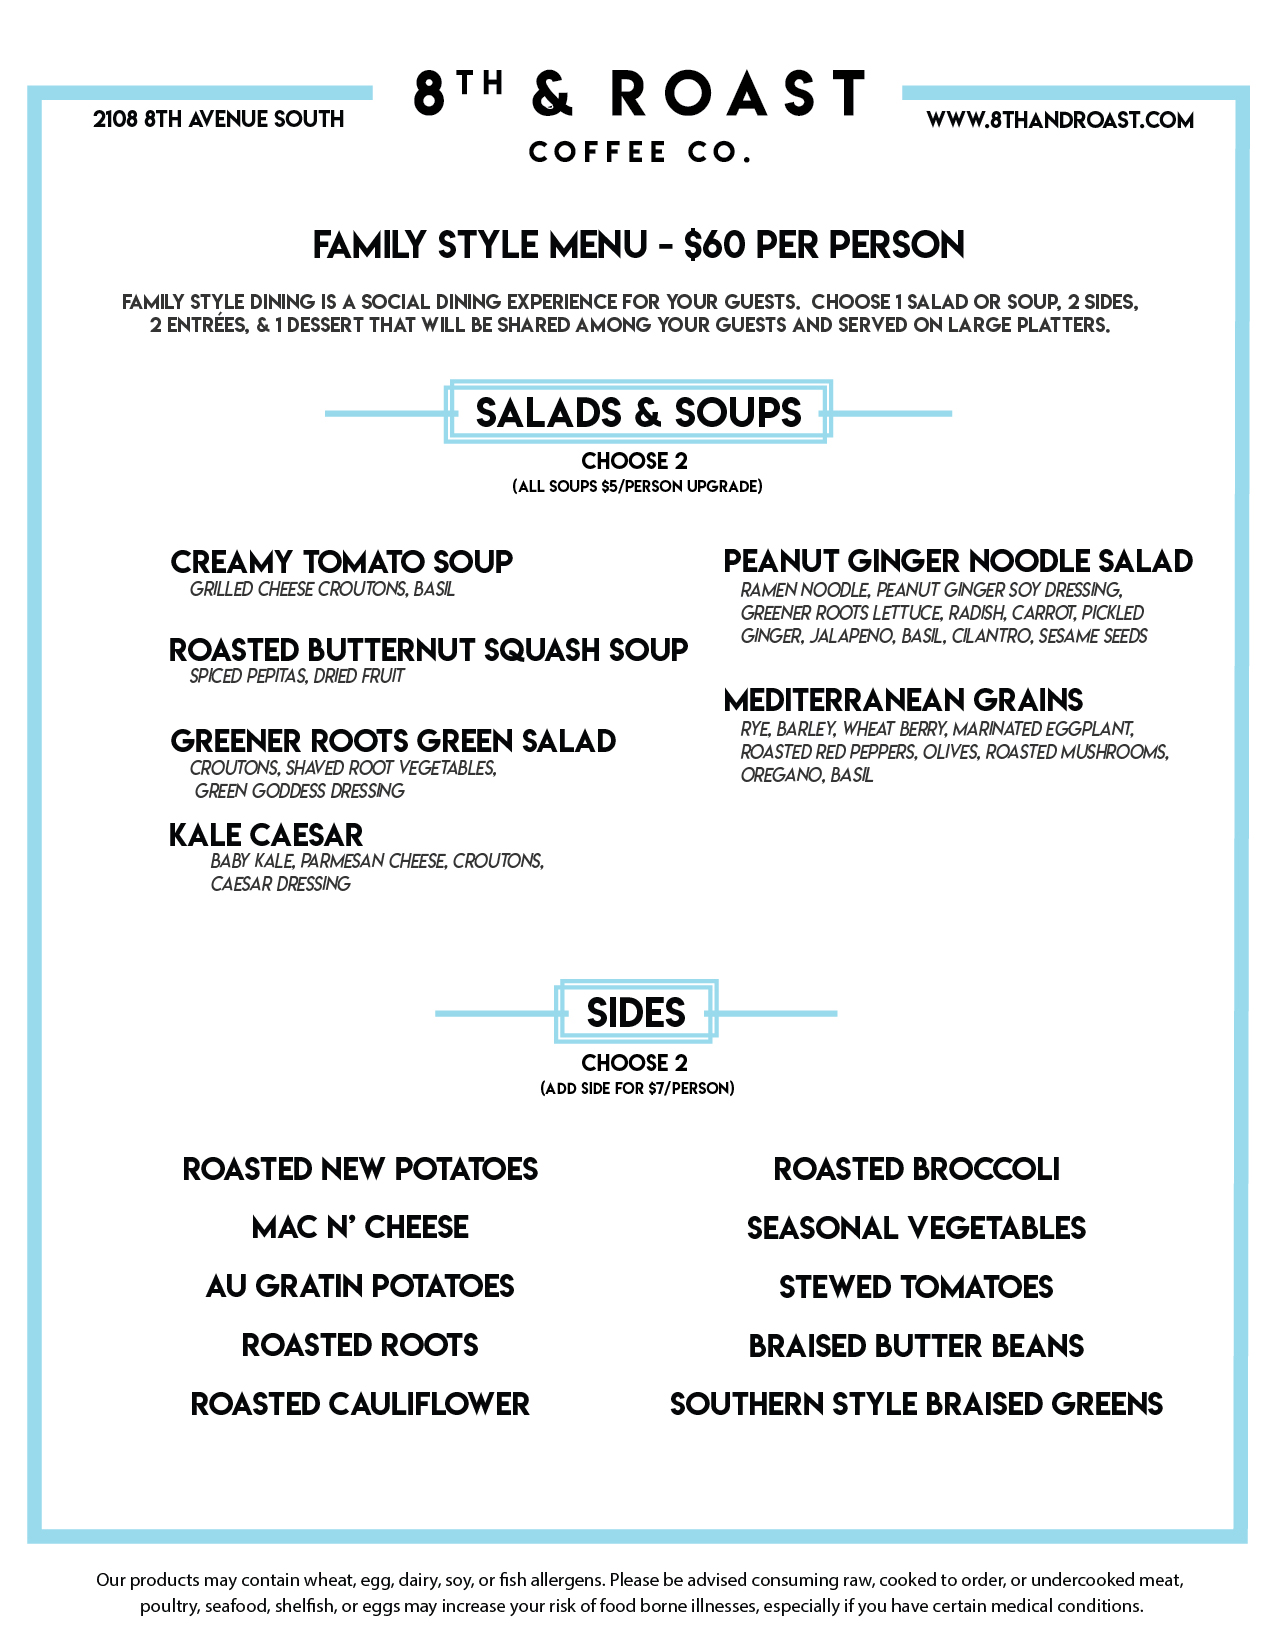 Family Style Menu - $60 per person  Family Style Dining is a social dining experience for your guests. Choose 1  Salad or Soup, 2 Sides, 2 Entrées, & 1 Dessert that will be shared among your  guests and served on large platters.  Salads & soups - Choose 2  (All soups $5/person upgrade)  Creamy Tomato Soup Grilled Cheese Croutons, Basil  Roasted Butternut  Squash Soup Spiced Pepitas, Dried Fruit  Greener Roots Green  Salad Croutons, Shaved Root  Vegetables, Green Goddess  Dressing  Kale Caesar Baby Kale, Parmesan Cheese,  Croutons, Caesar Dressing  Peanut Ginger  Noodle Salad Ramen Noodle, Peanut Ginger  Soy Dressing, Greener Roots  Lettuce, Radish, Carrot, Pickled  Ginger, Jalapeno, Basil, Cilantro,  Sesame Seeds  Mediterranean Grains Rye, Barley, Wheat Berry, Marinated  Eggplant, Roasted Red Peppers,  Olives, Roasted Mushrooms,  Oregano, Basil  Sides - Choose 2  Add side for $7/person  Roasted New Potatoes  Mac N' Cheese  Au Gratin Potatoes  Roasted Roots  Roasted Cauliflower  Roasted Broccoli  Seasonal Vegetables  Stewed Tomatoes  Braised Butter Beans  Southern Style Braised Greens